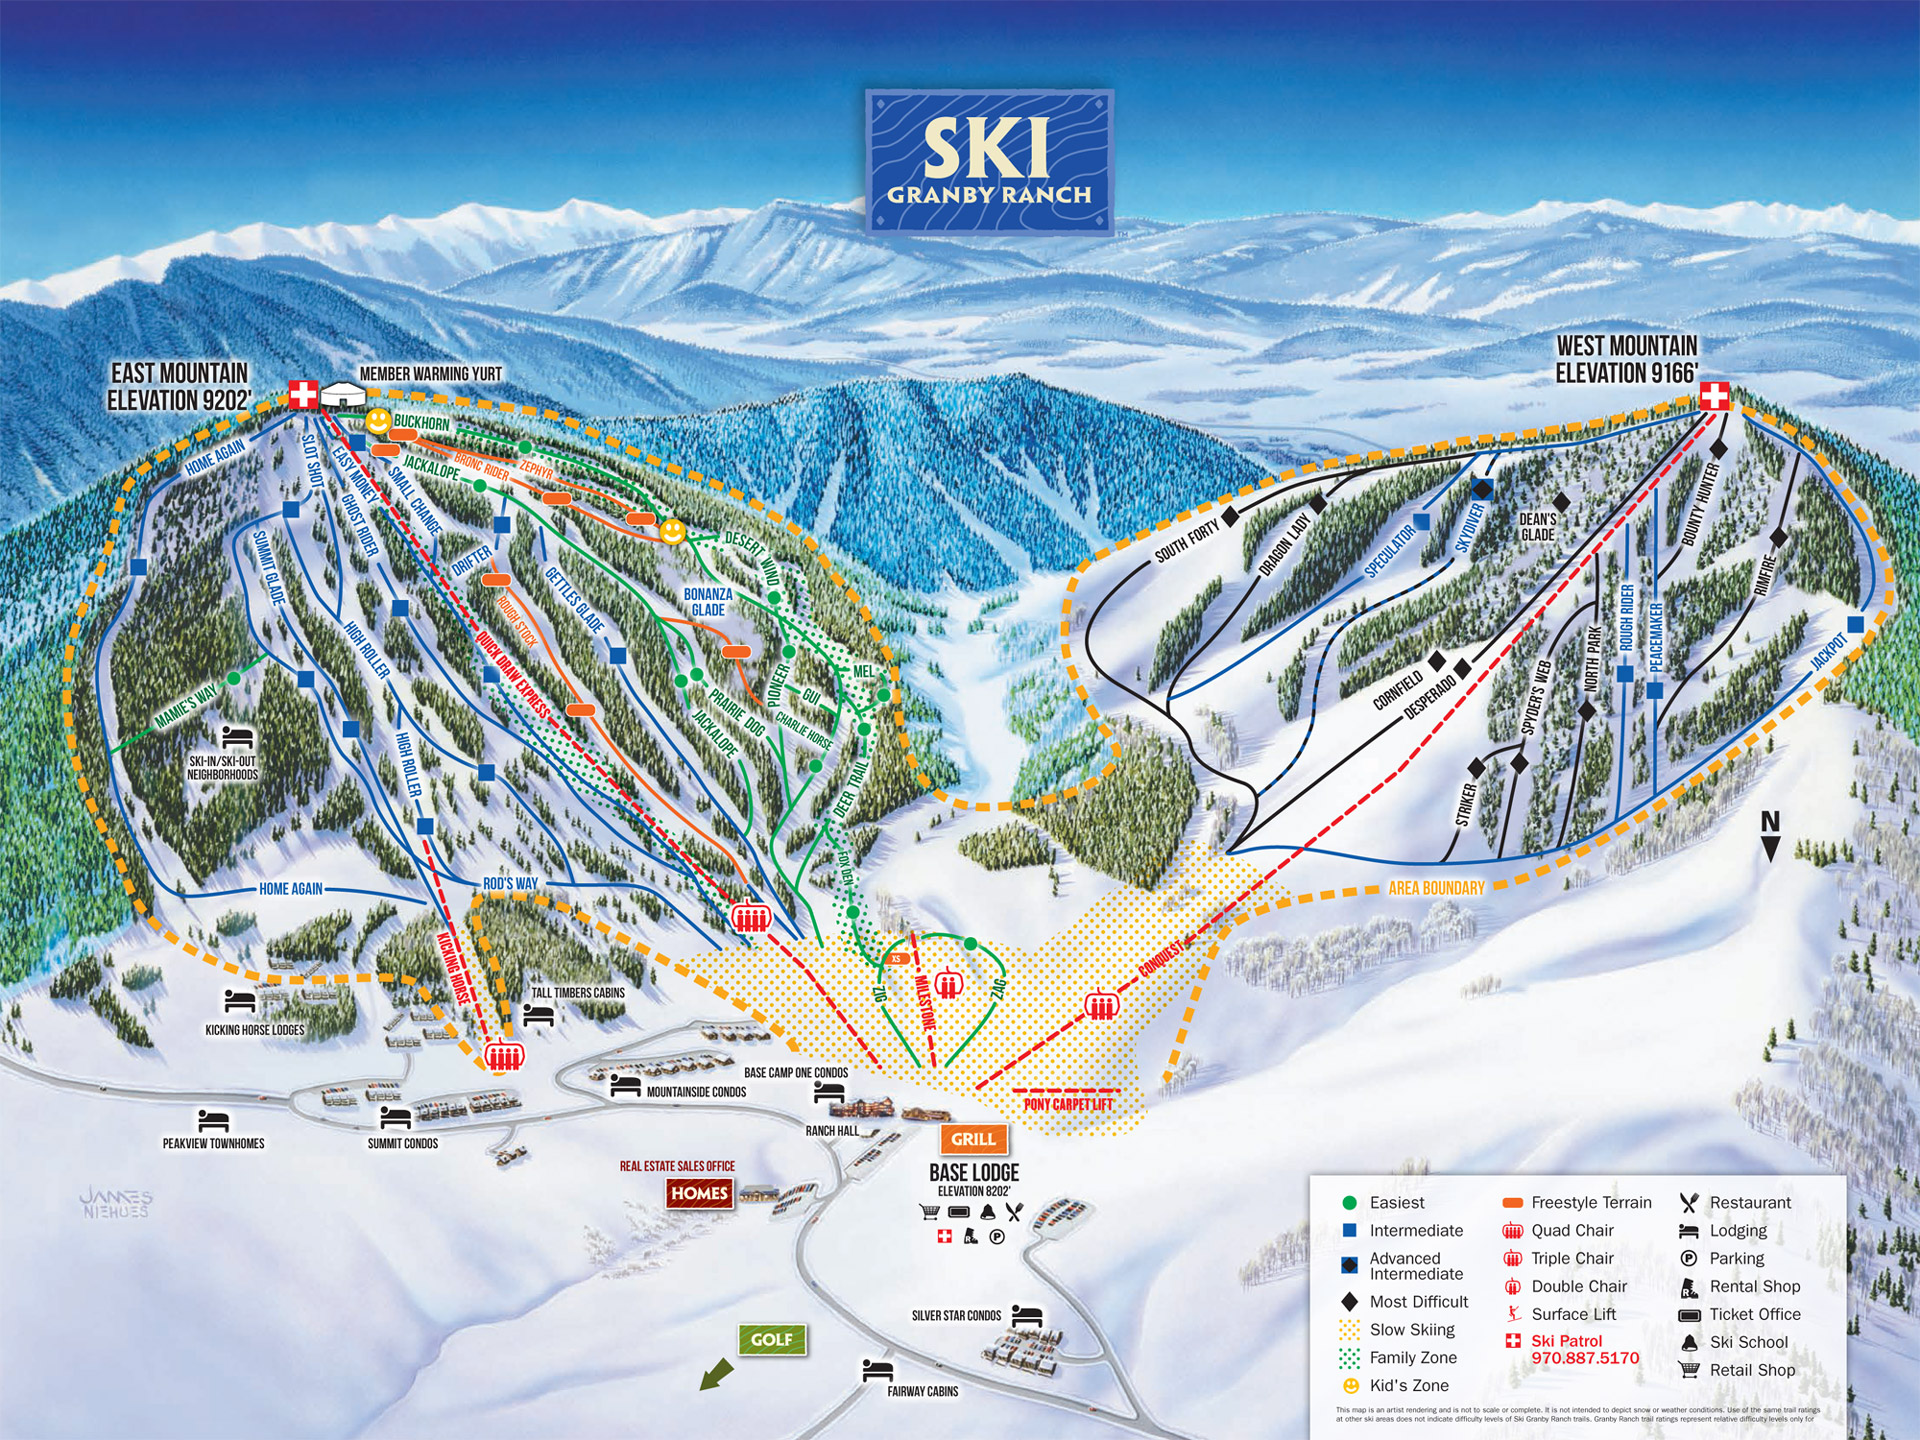 Ski Granby Ranch | Skiing Snowboarding | Colorado Vacation ... on cowiche canyon map, snow california map, snow united states map, snow mountain resort map, cross country ski park city map, big bend ranch state park map, contact us map,